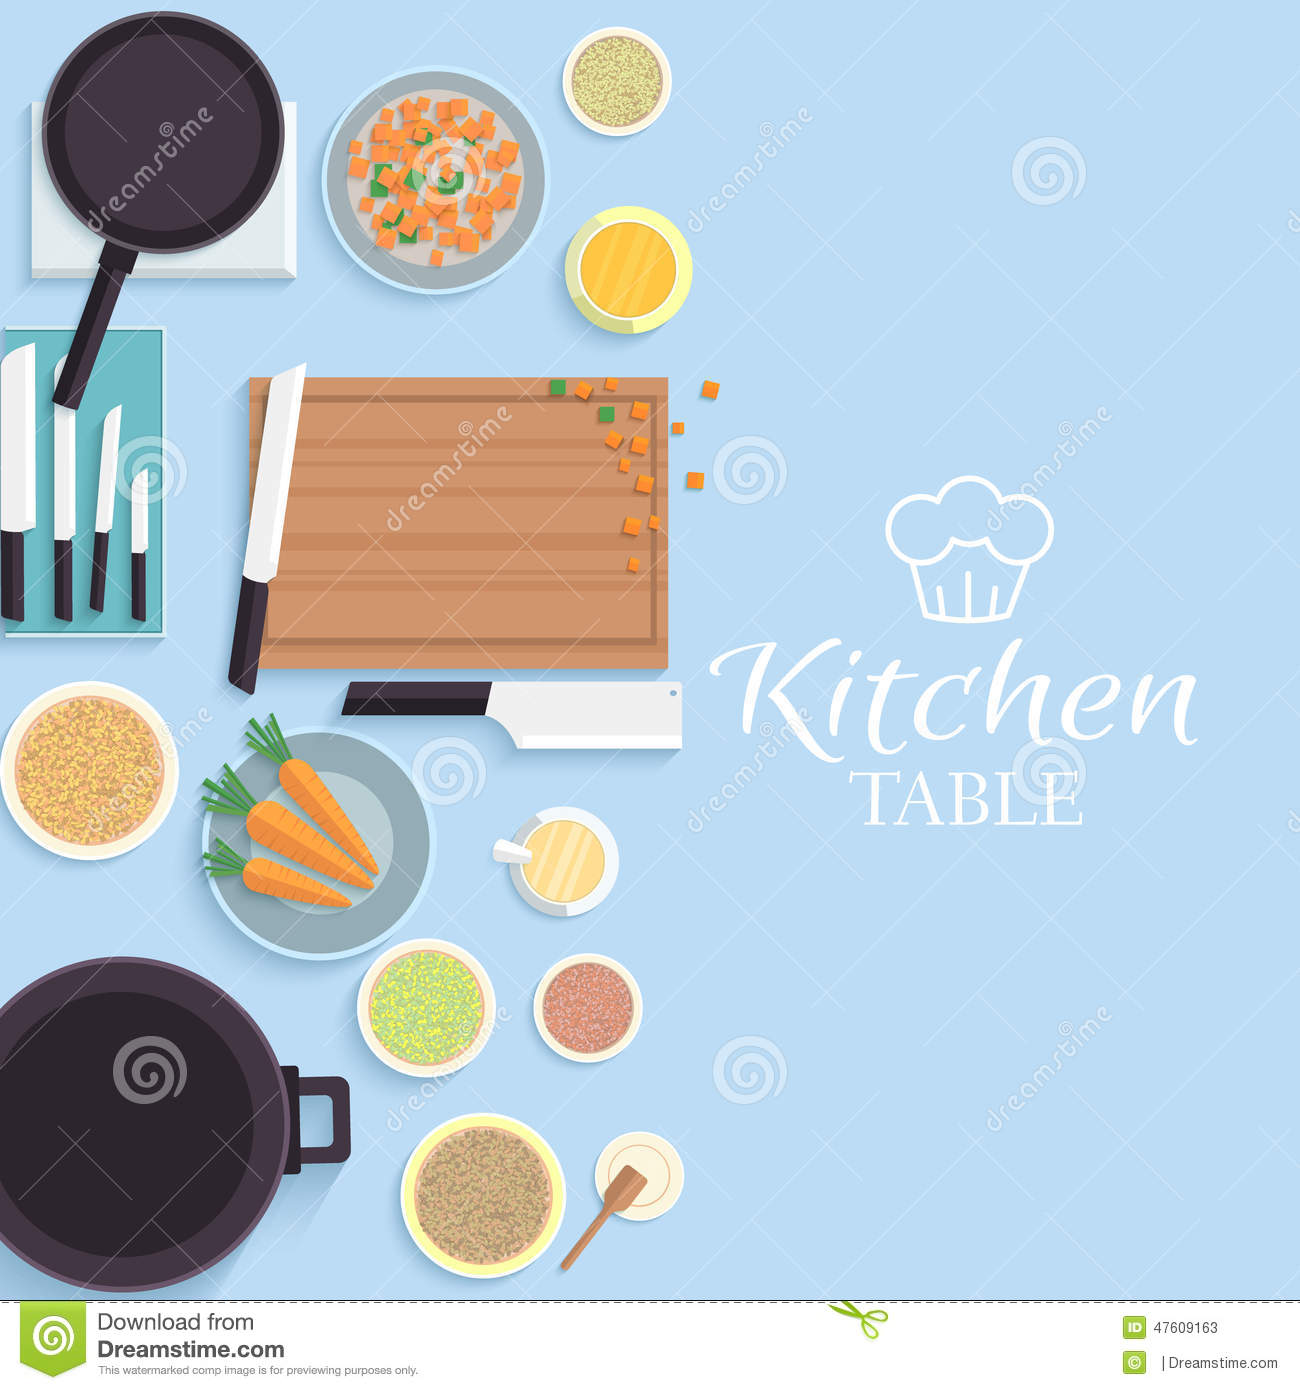 Flat Kitchen Table For Cooking In House Vector Stock Vector Image 47609163